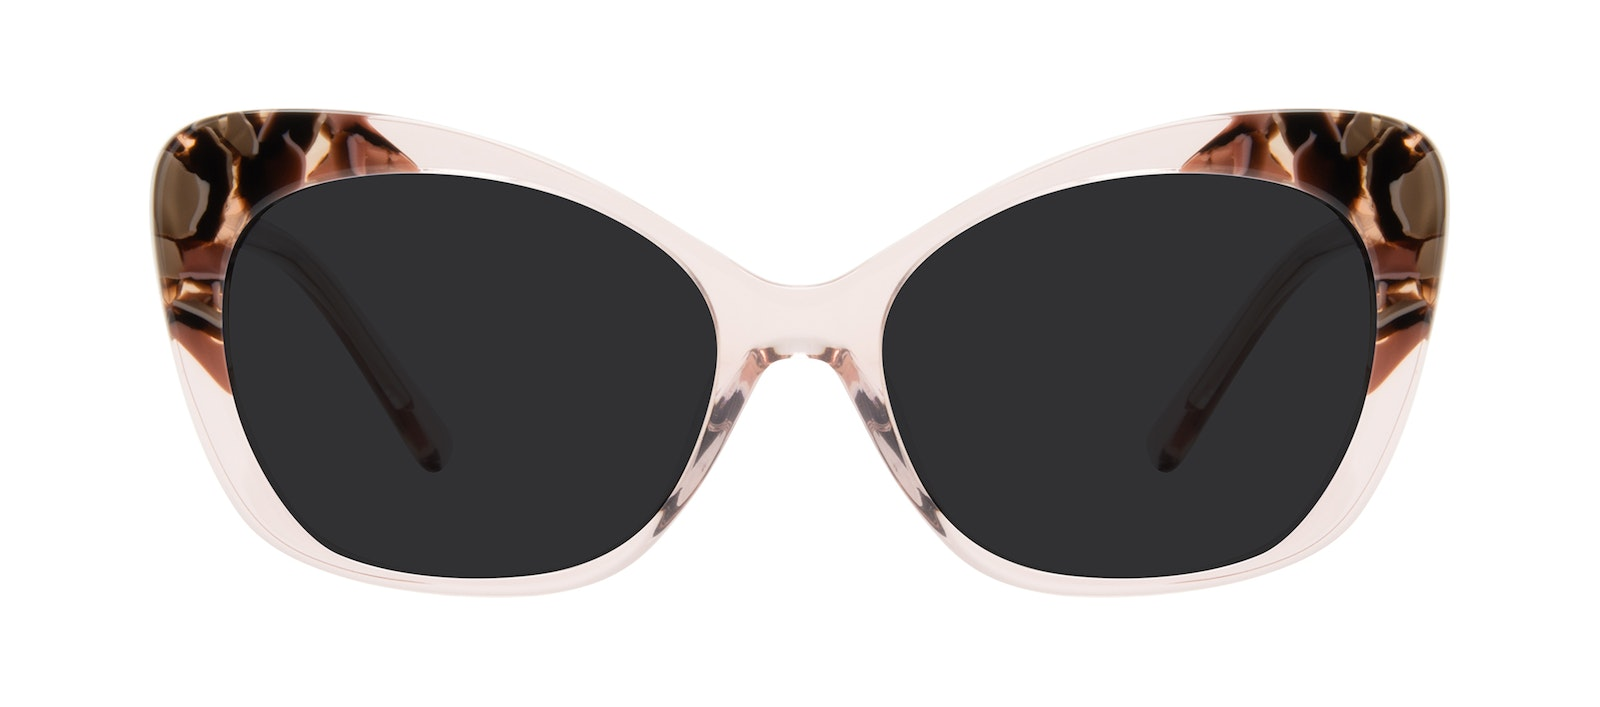 Affordable Fashion Glasses Cat Eye Sunglasses Women Obvious Pink Quartz Front